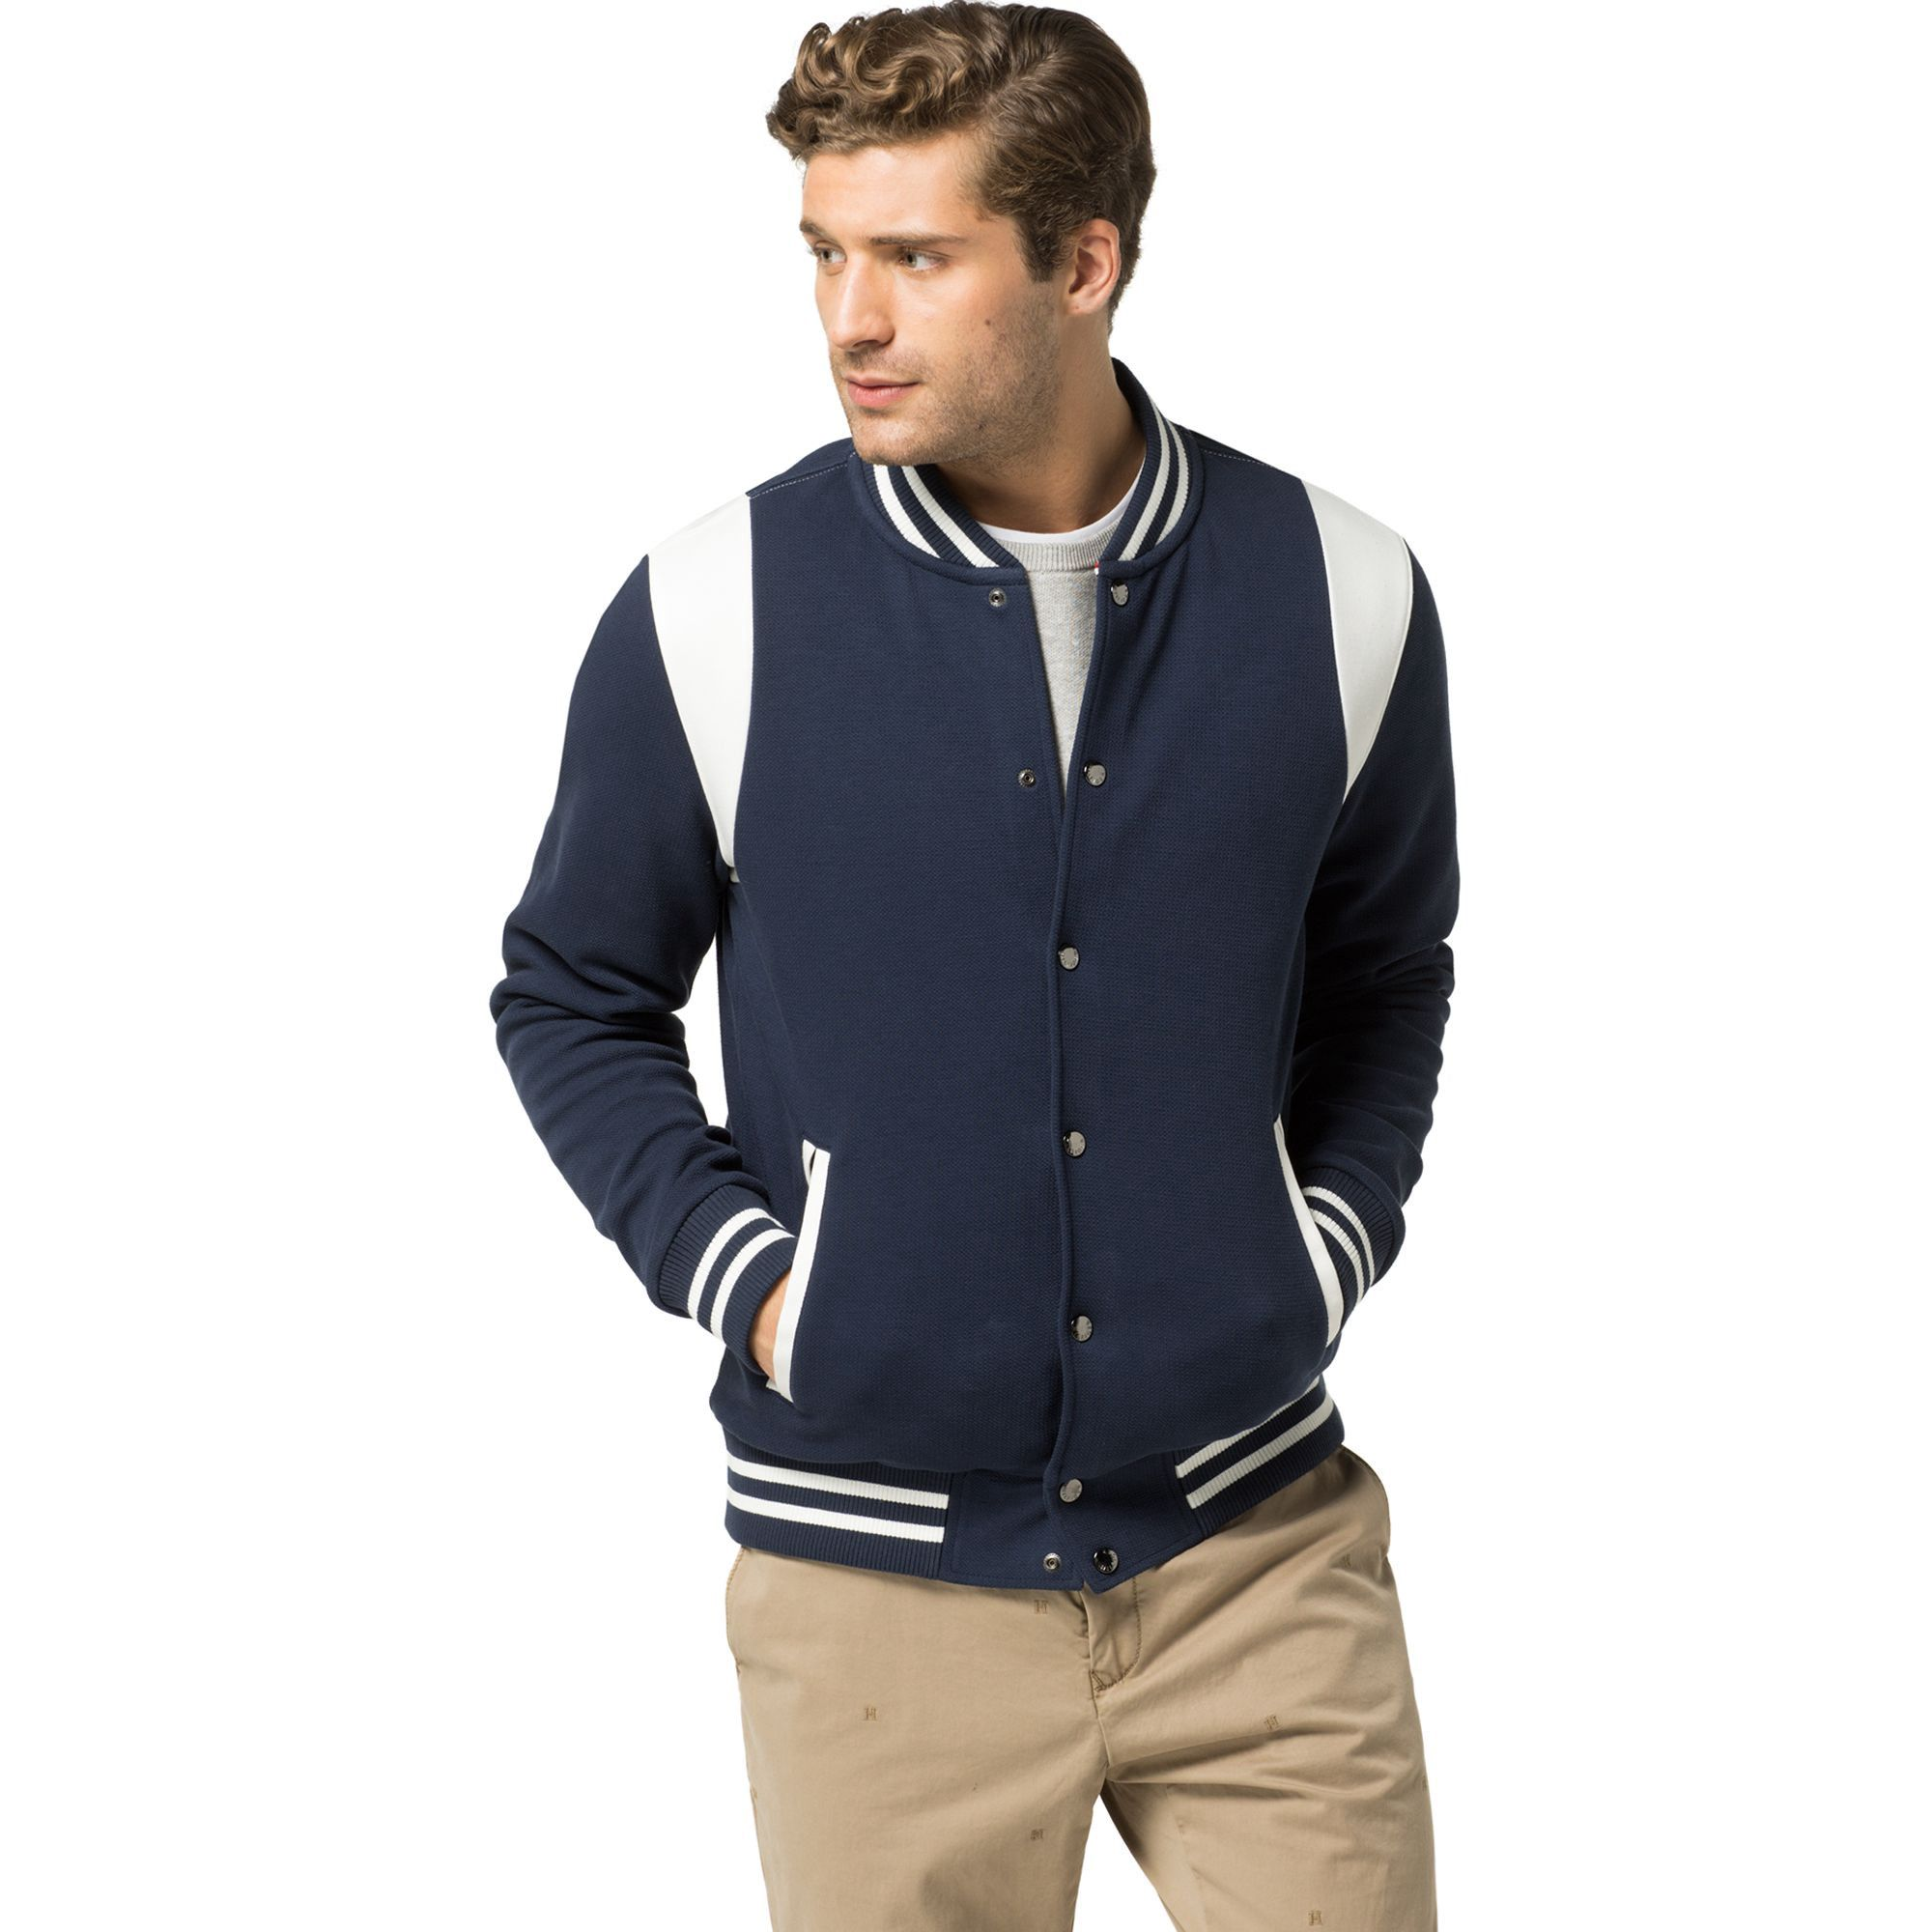 c02b05aed70 Shop the blue cotton blend crew neck sweatshirt from the latest Tommy  Hilfiger sweatshirts collection for men. Free returns   delivery over  8719253405723